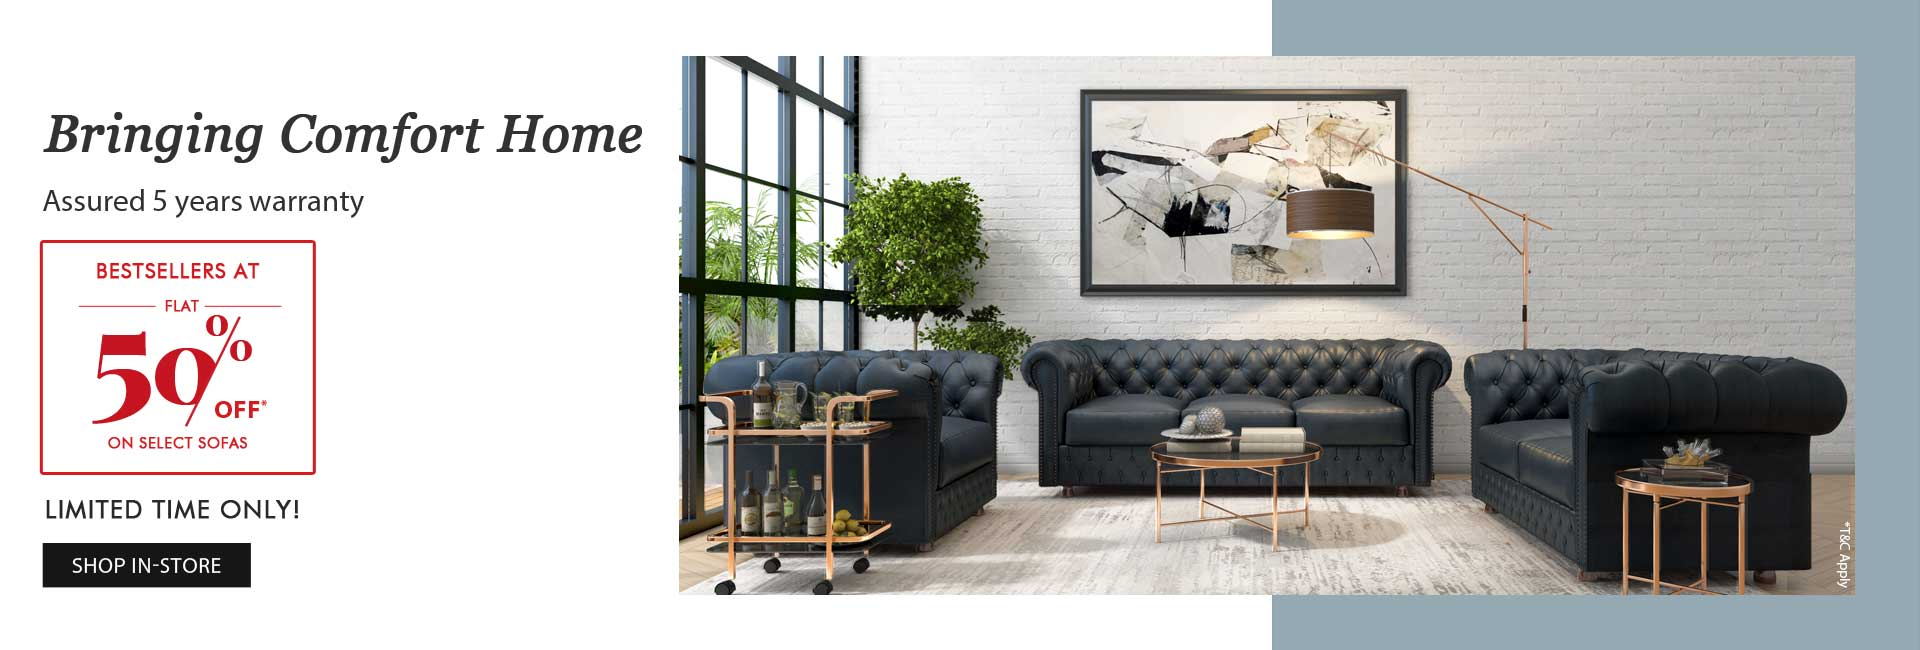 Flat 50% Off on select sofas